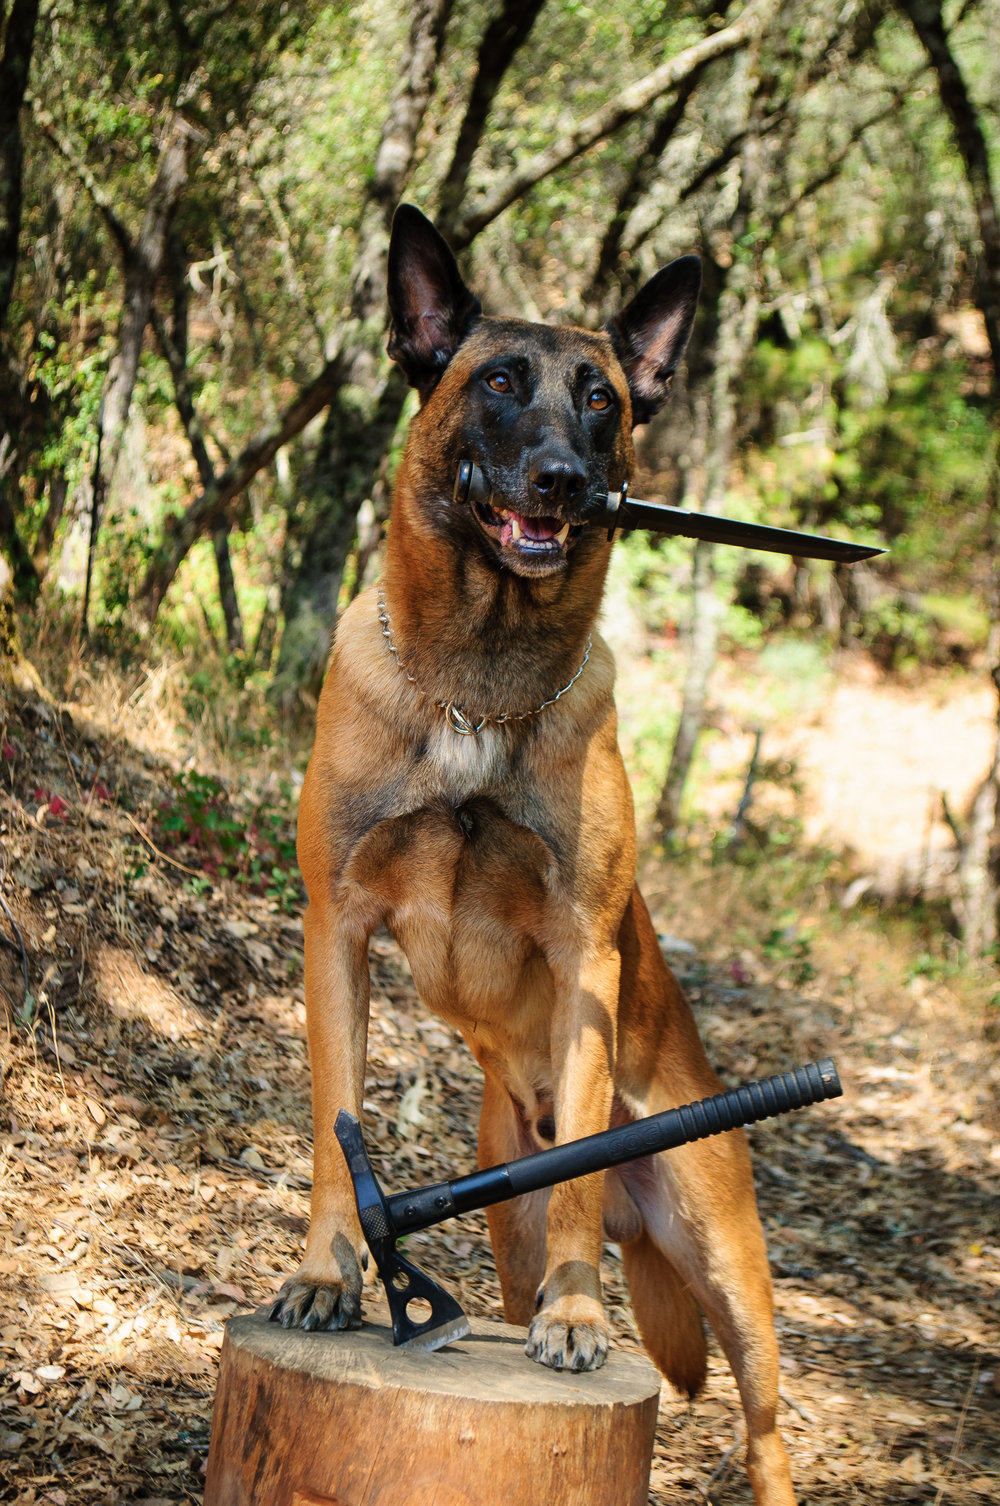 Canine Equipment - Bringing the bite to the fightOur equipment was specifically designed to increase the workability and effectiveness of our nations working dogs. Whether it be for patrol, detection, search and rescue operations or service animals, our equipment was built to handle the riggers of duty. We stand behind all of our equipment with a lifetime guarantee.